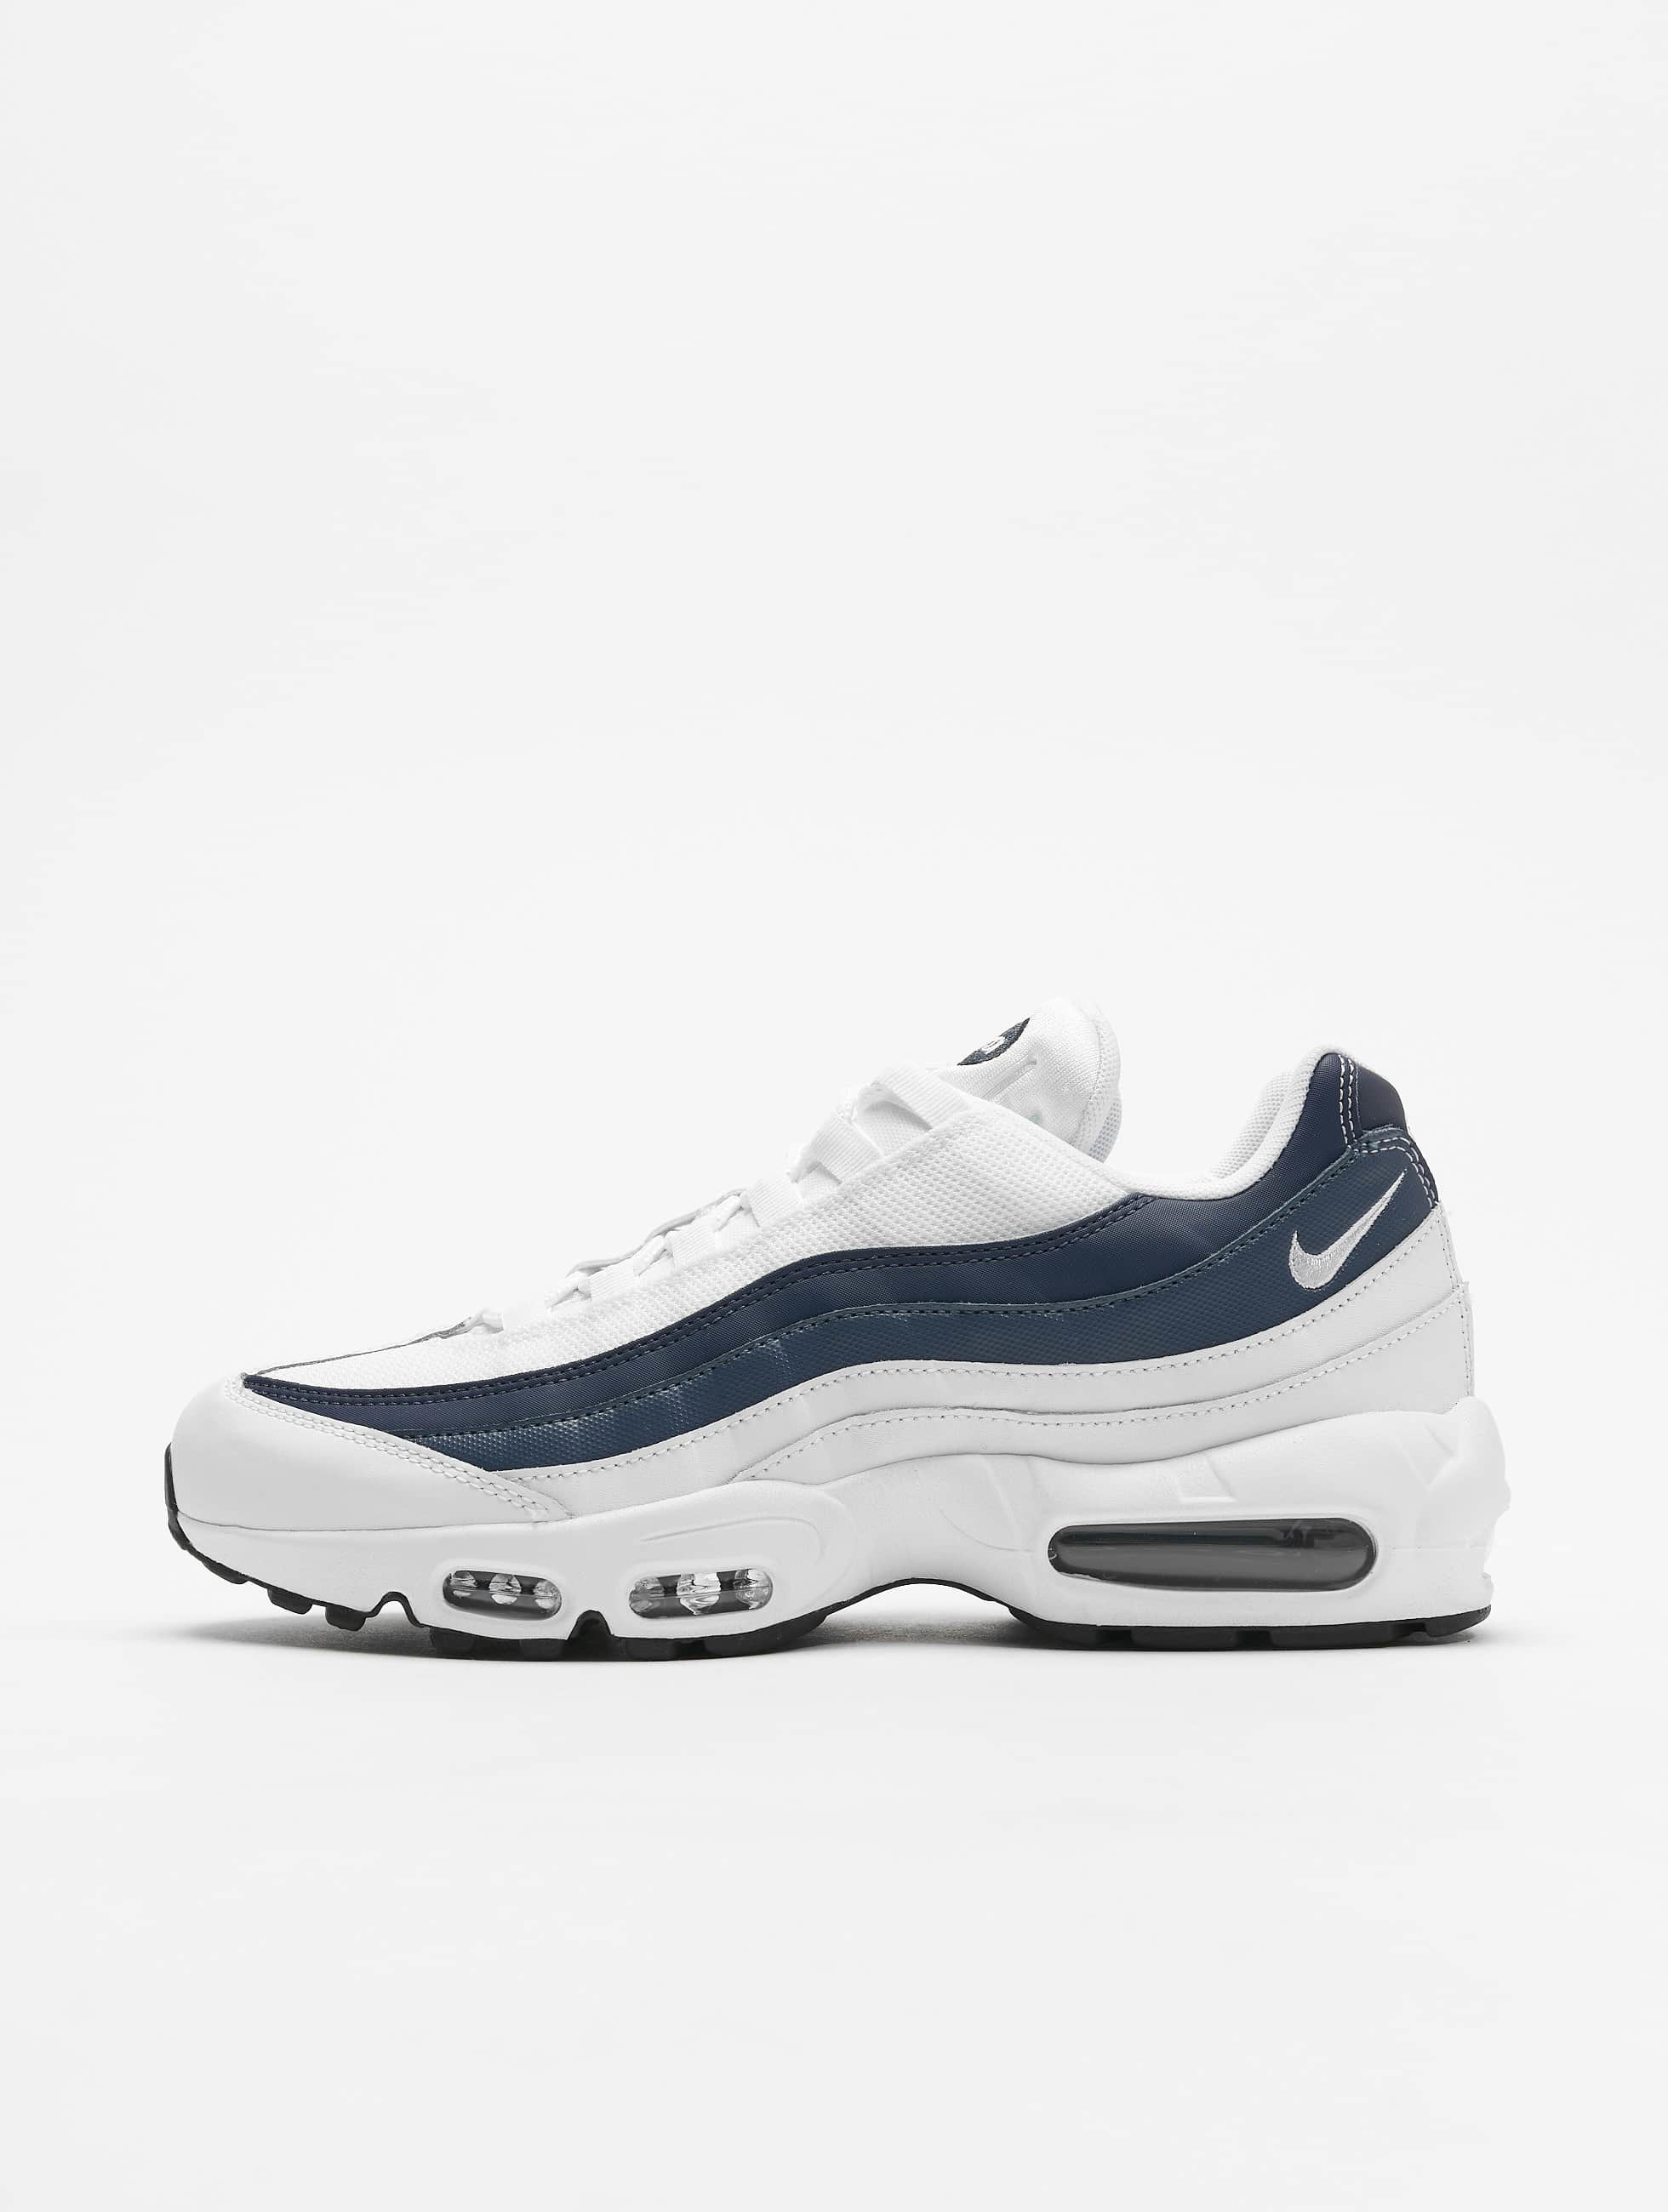 haute couture 89939 5b57f Nike Air Max 95 Essential Sneakers White/White/Midnight Navy/Monsoon Blue